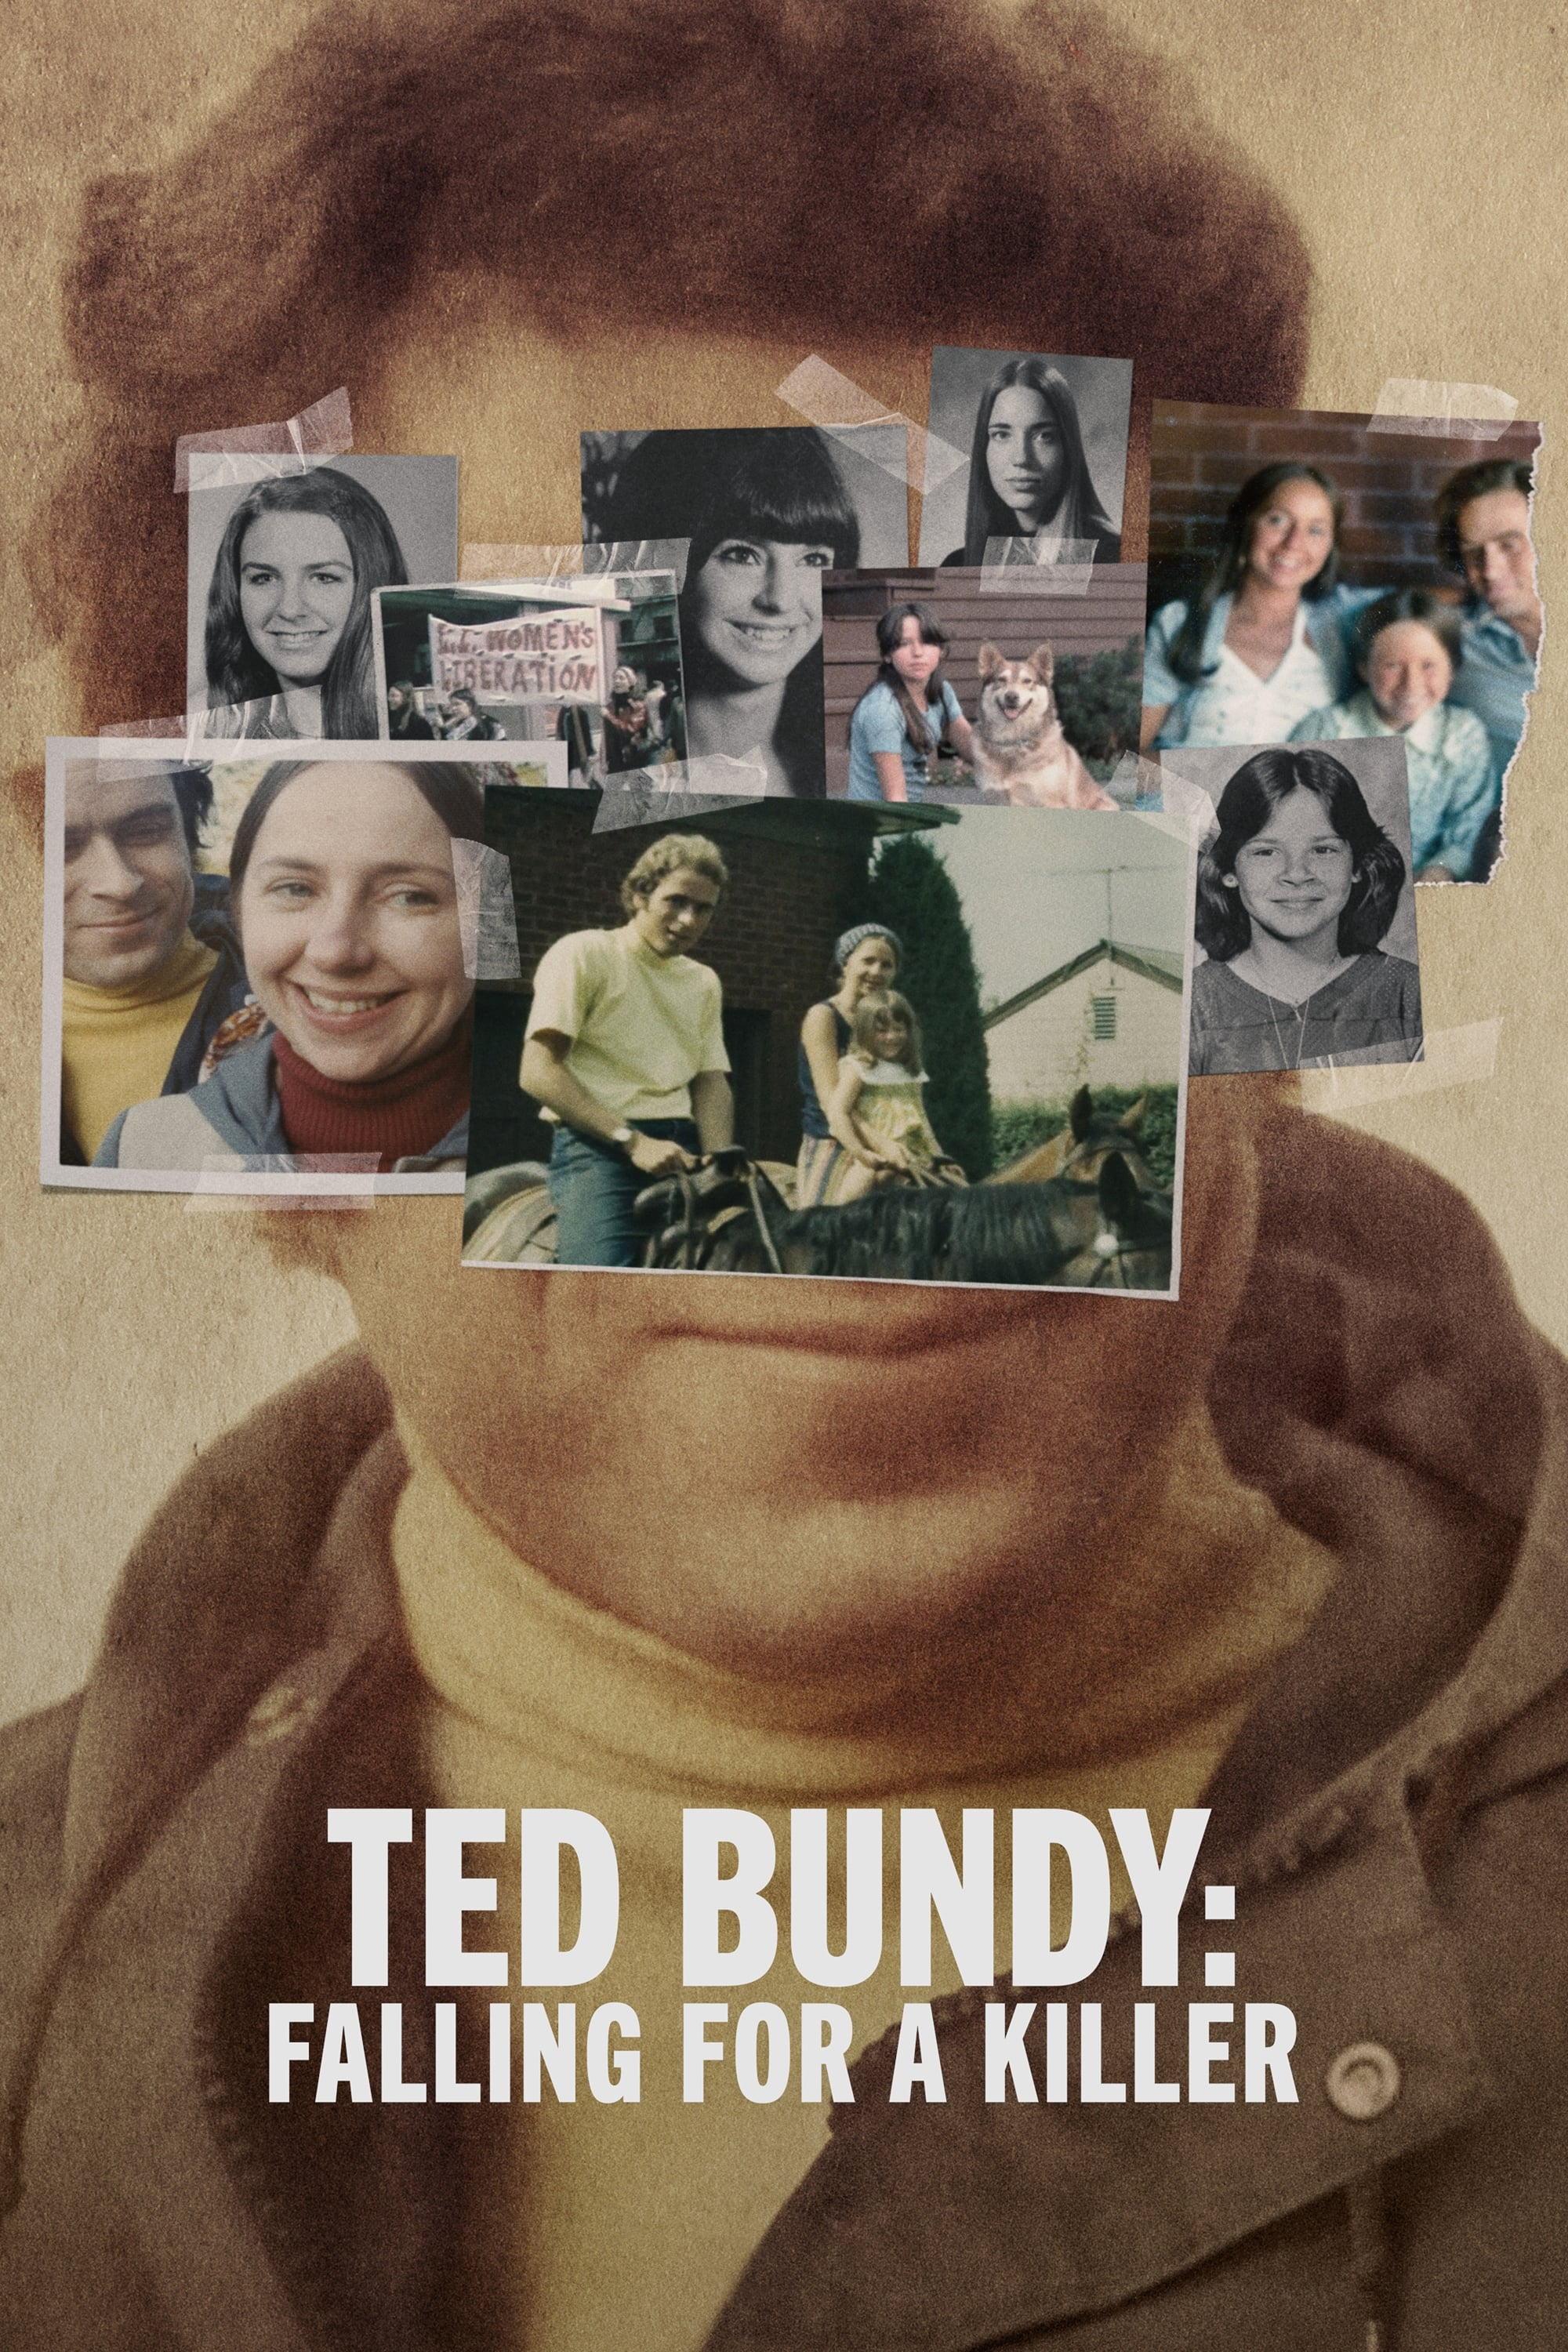 Ted Bundy: Falling for a Killer TV Shows About Killer